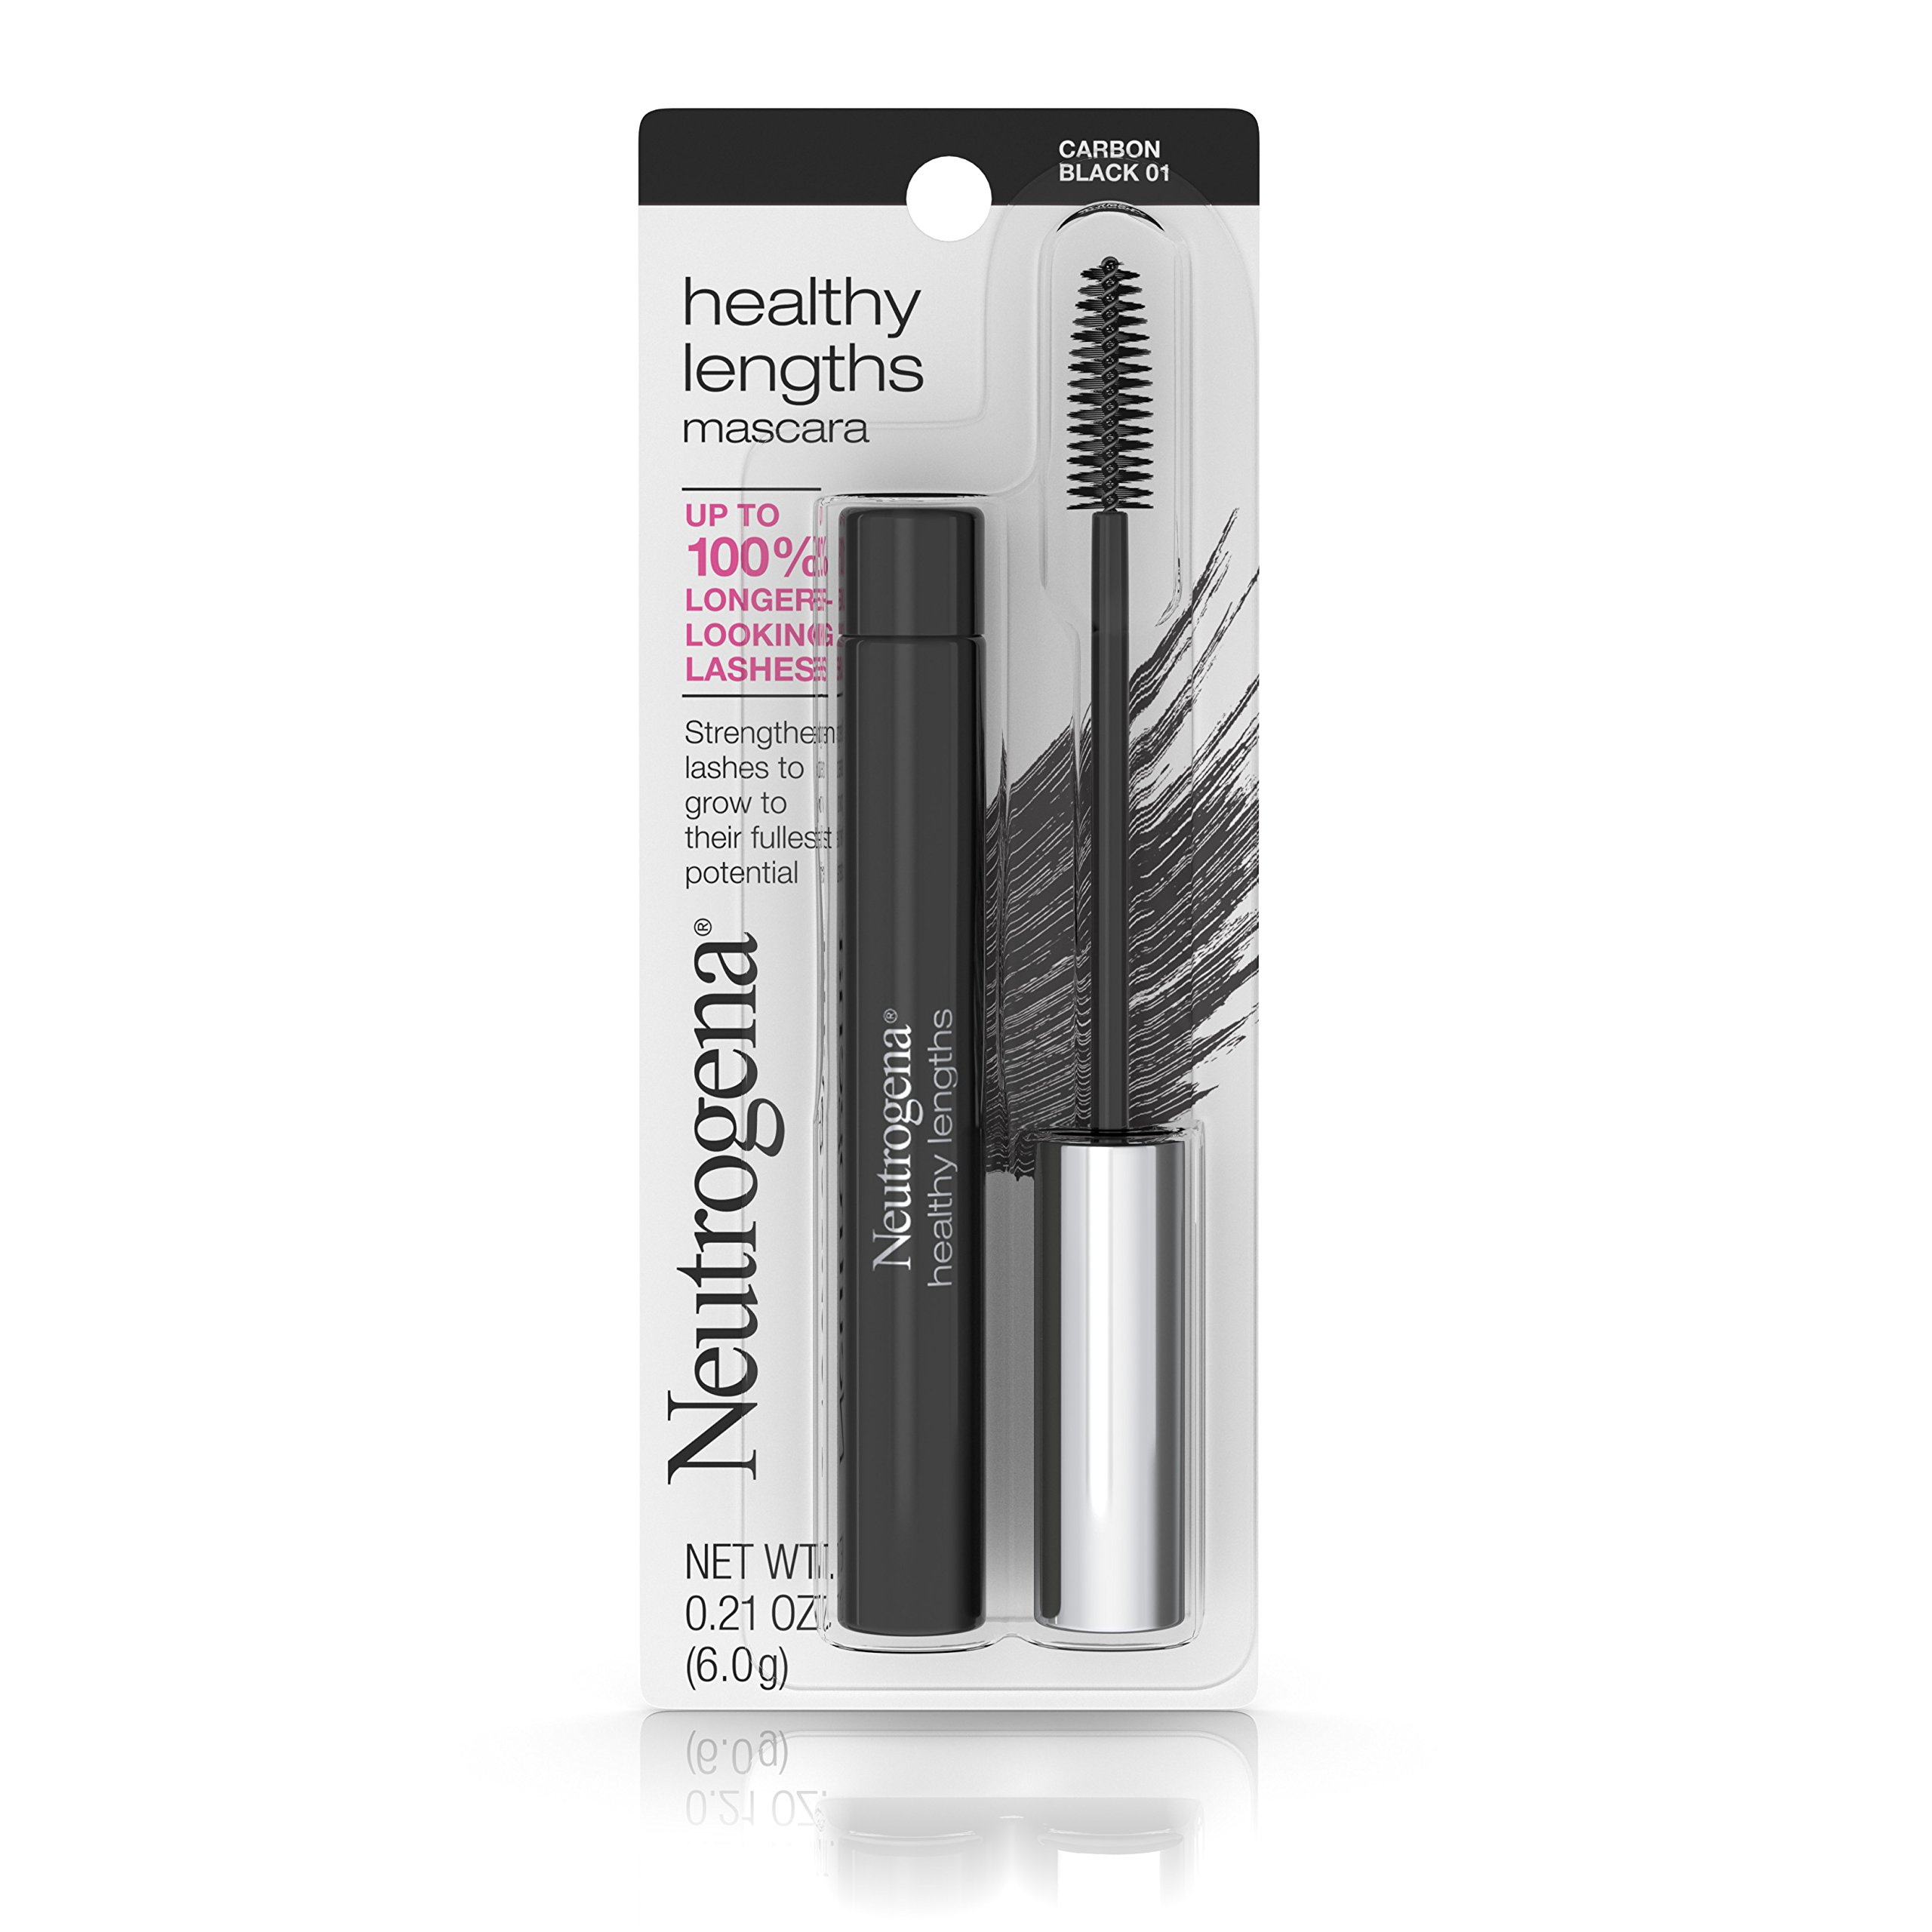 Neutrogena Healthy Lengths Mascara, Carbon Black 01.21 Oz.